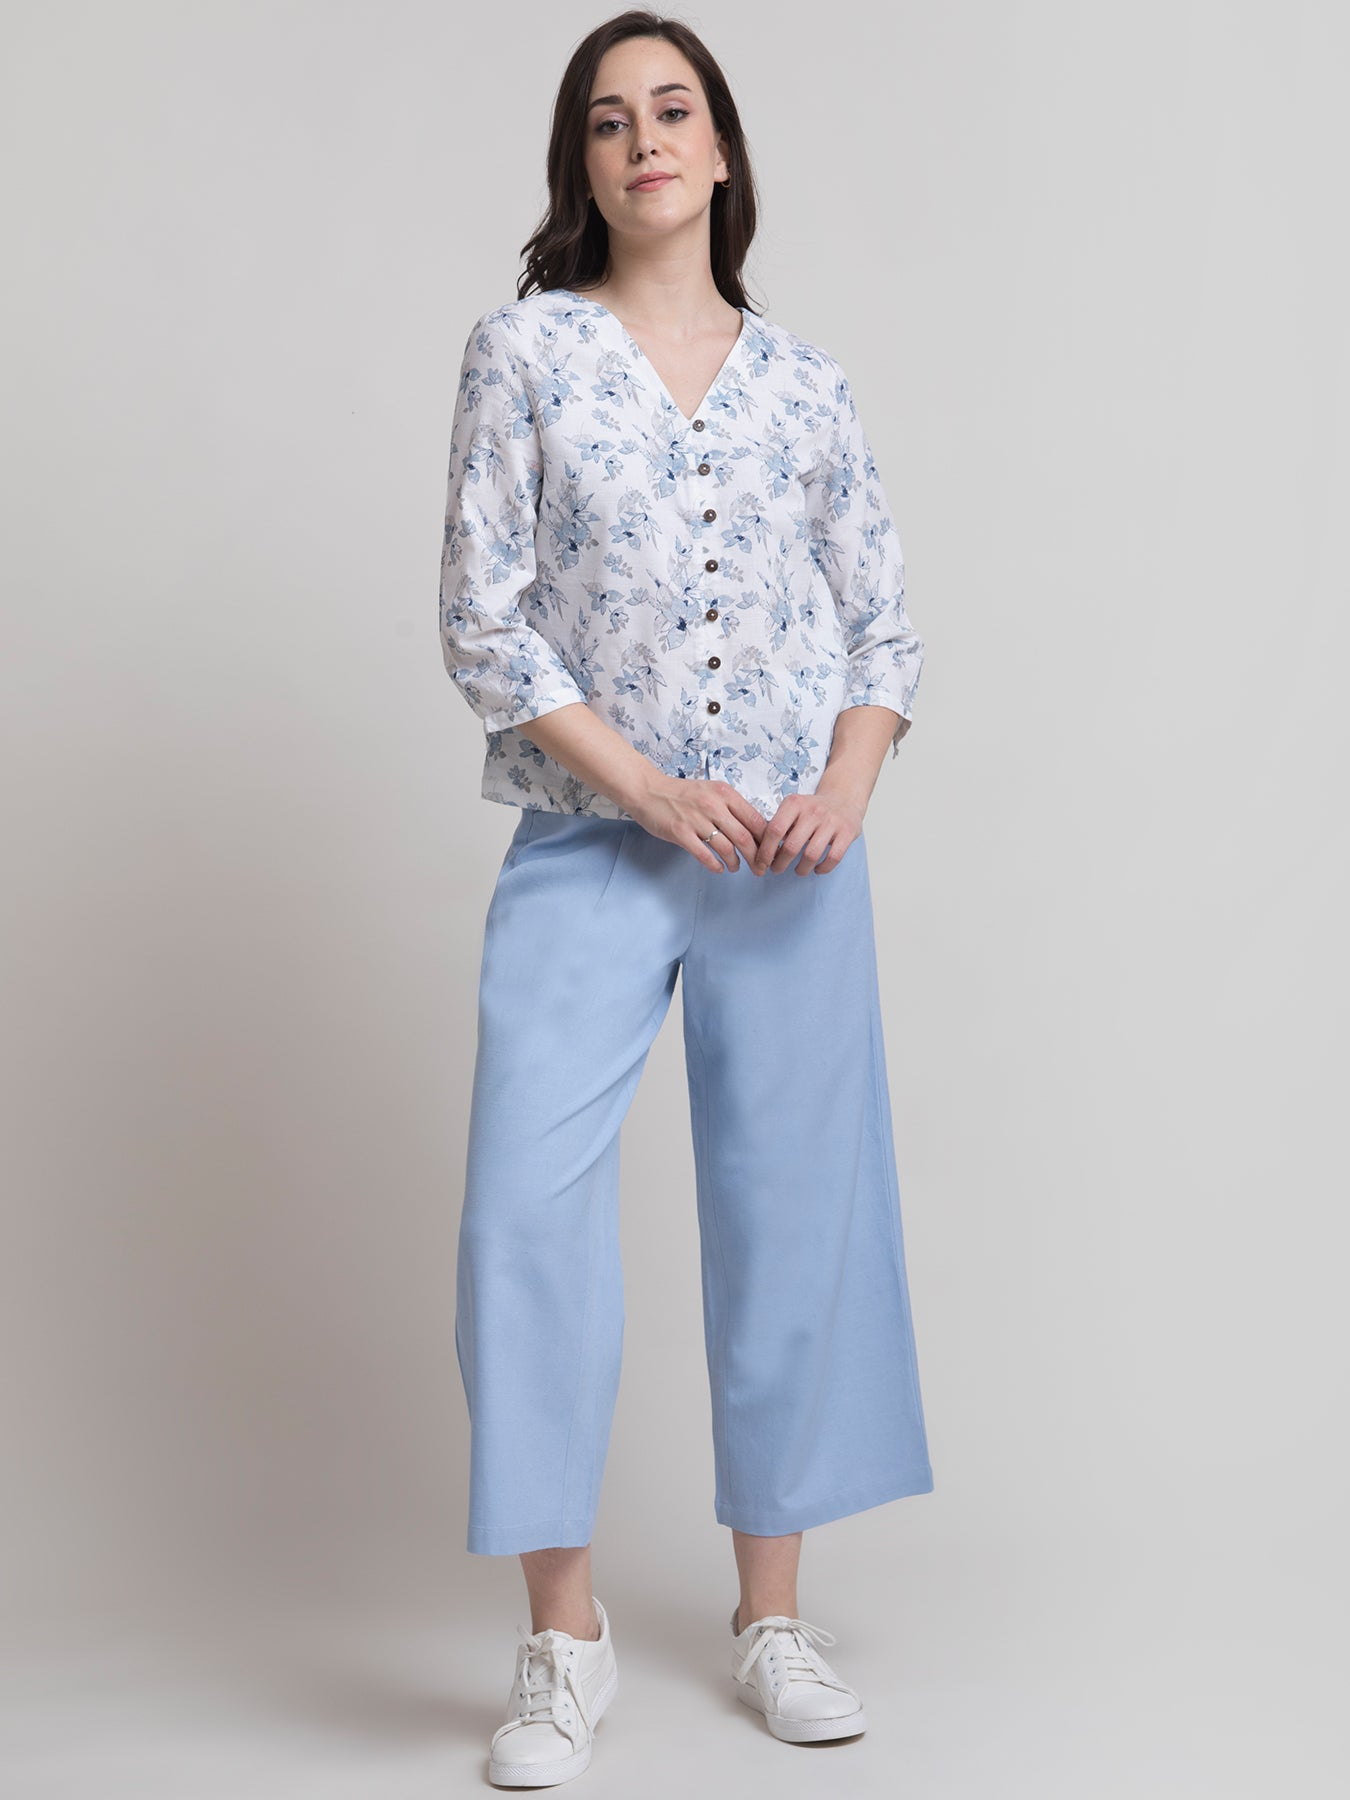 Linen Floral Top and Pleated Elasticated Culottes Co-ord - White and Blue